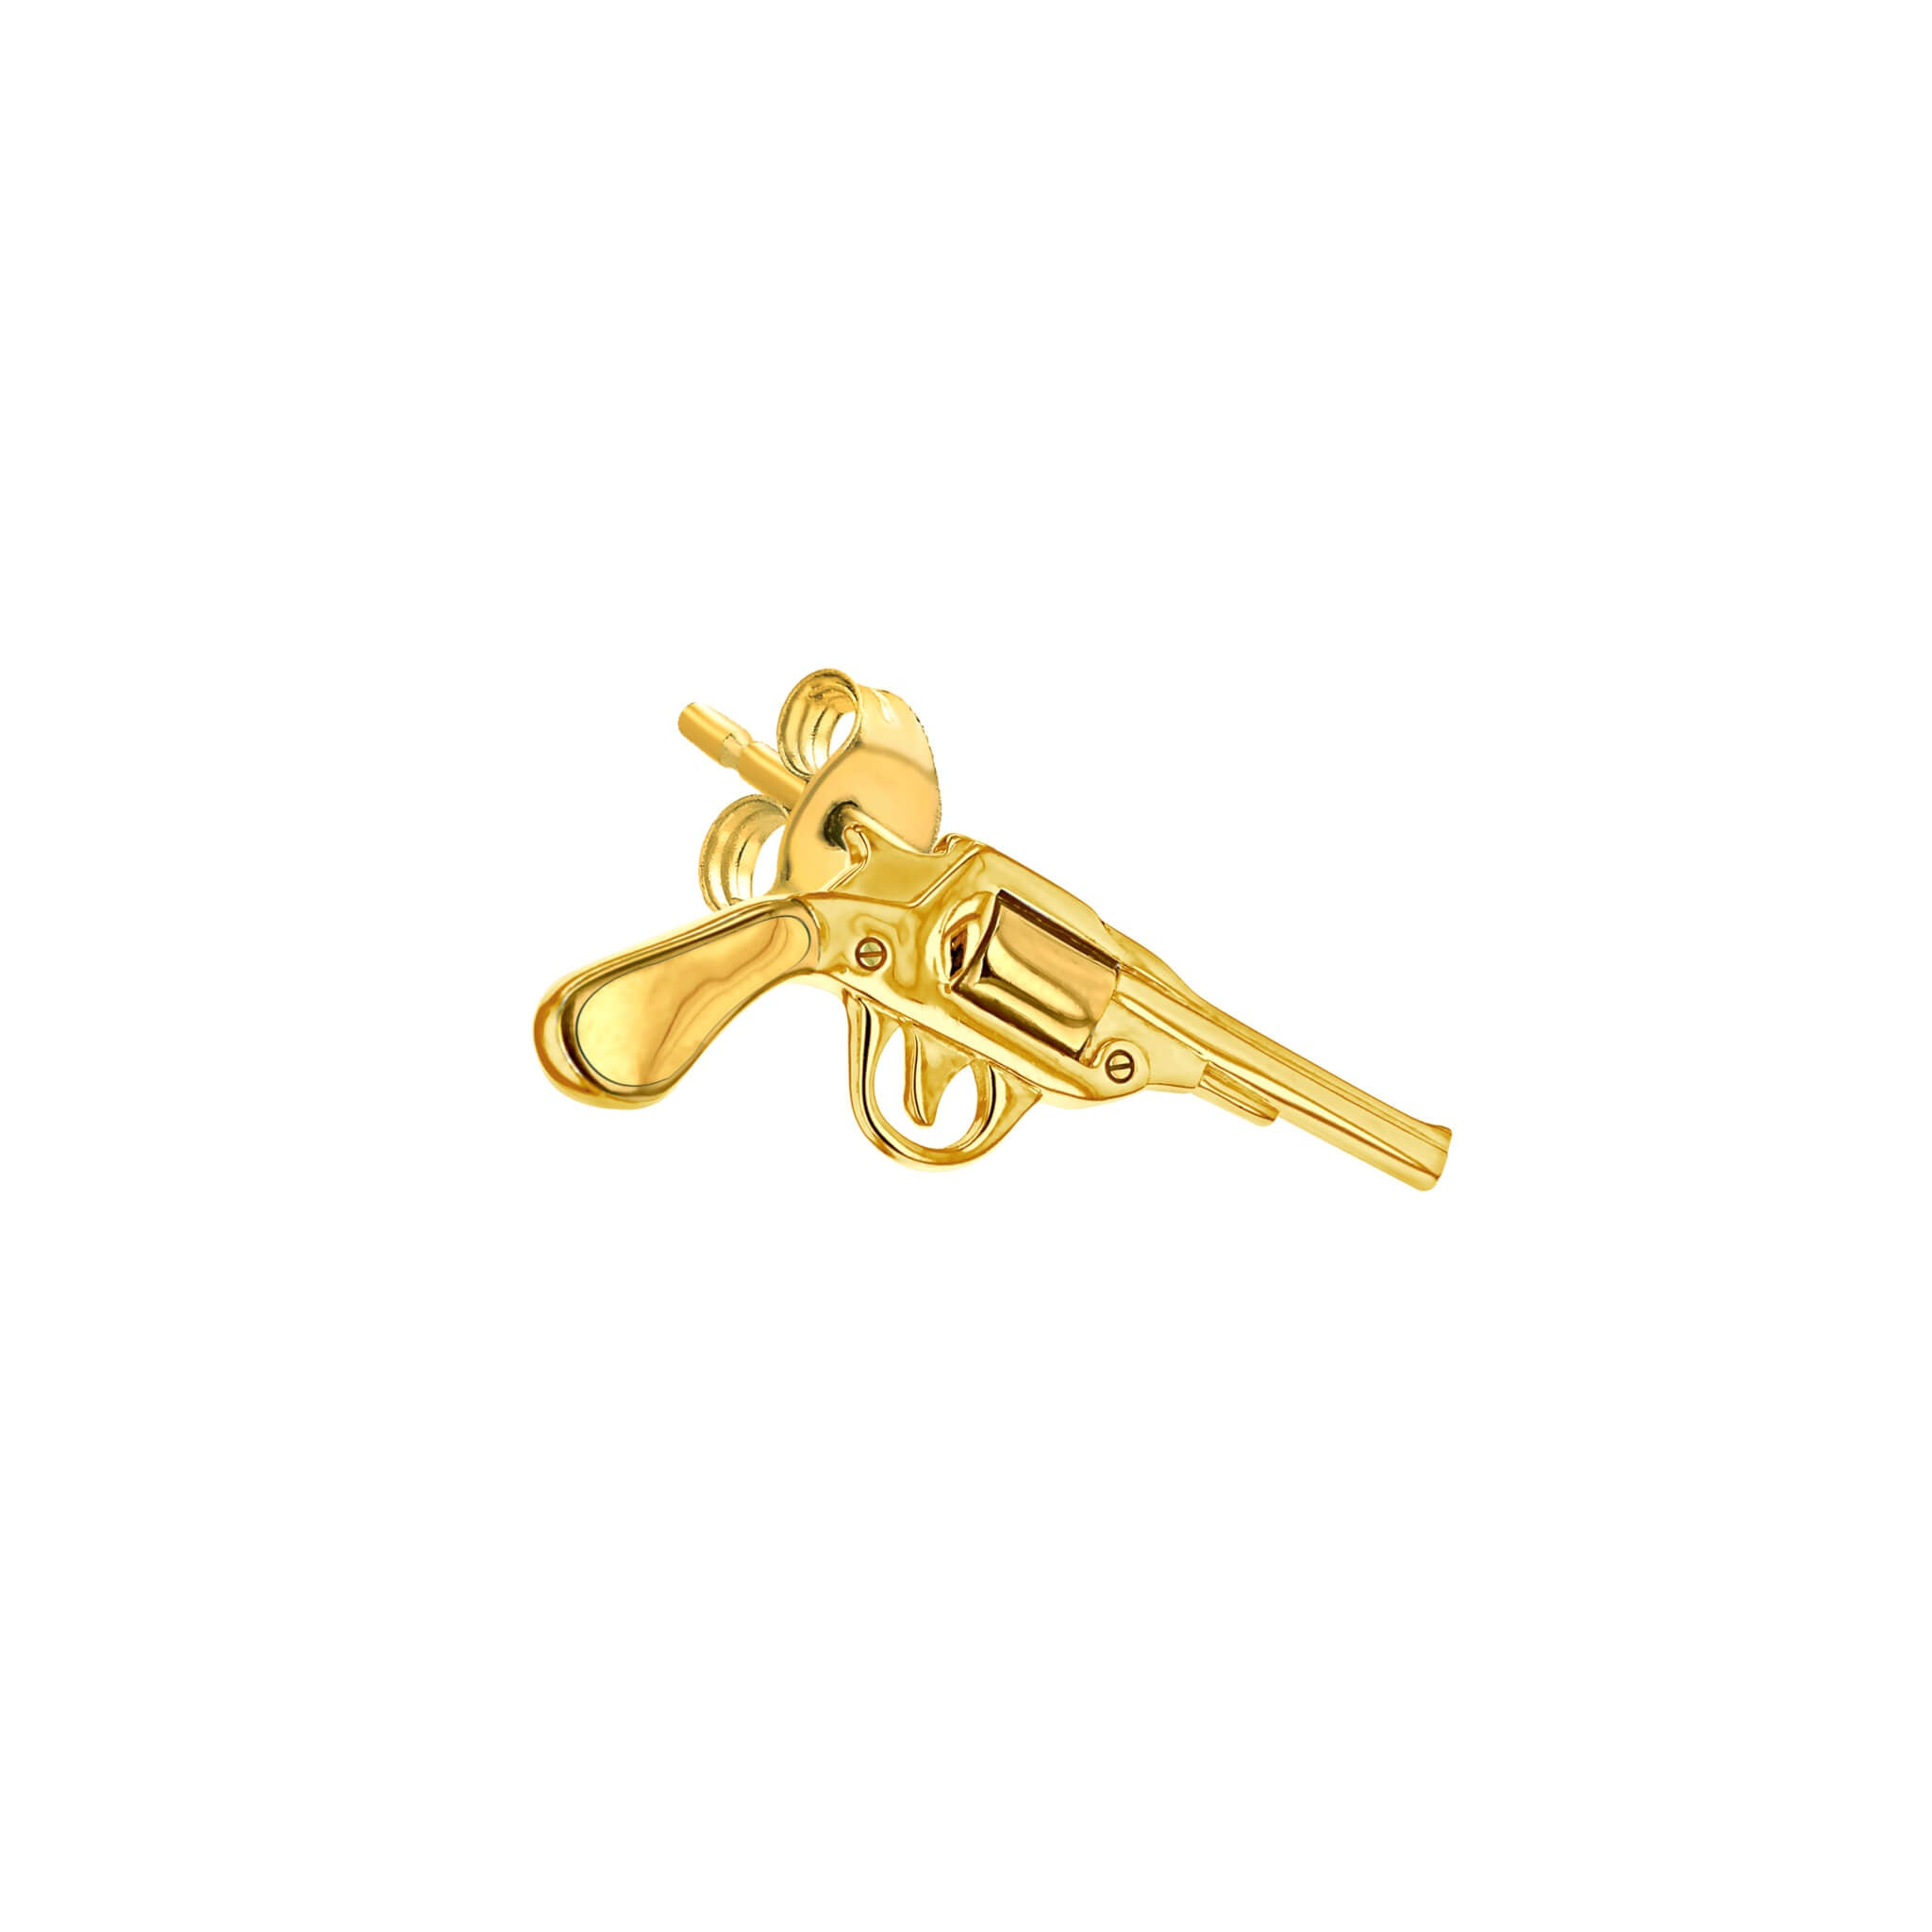 Pistol Stud Earring in Gold